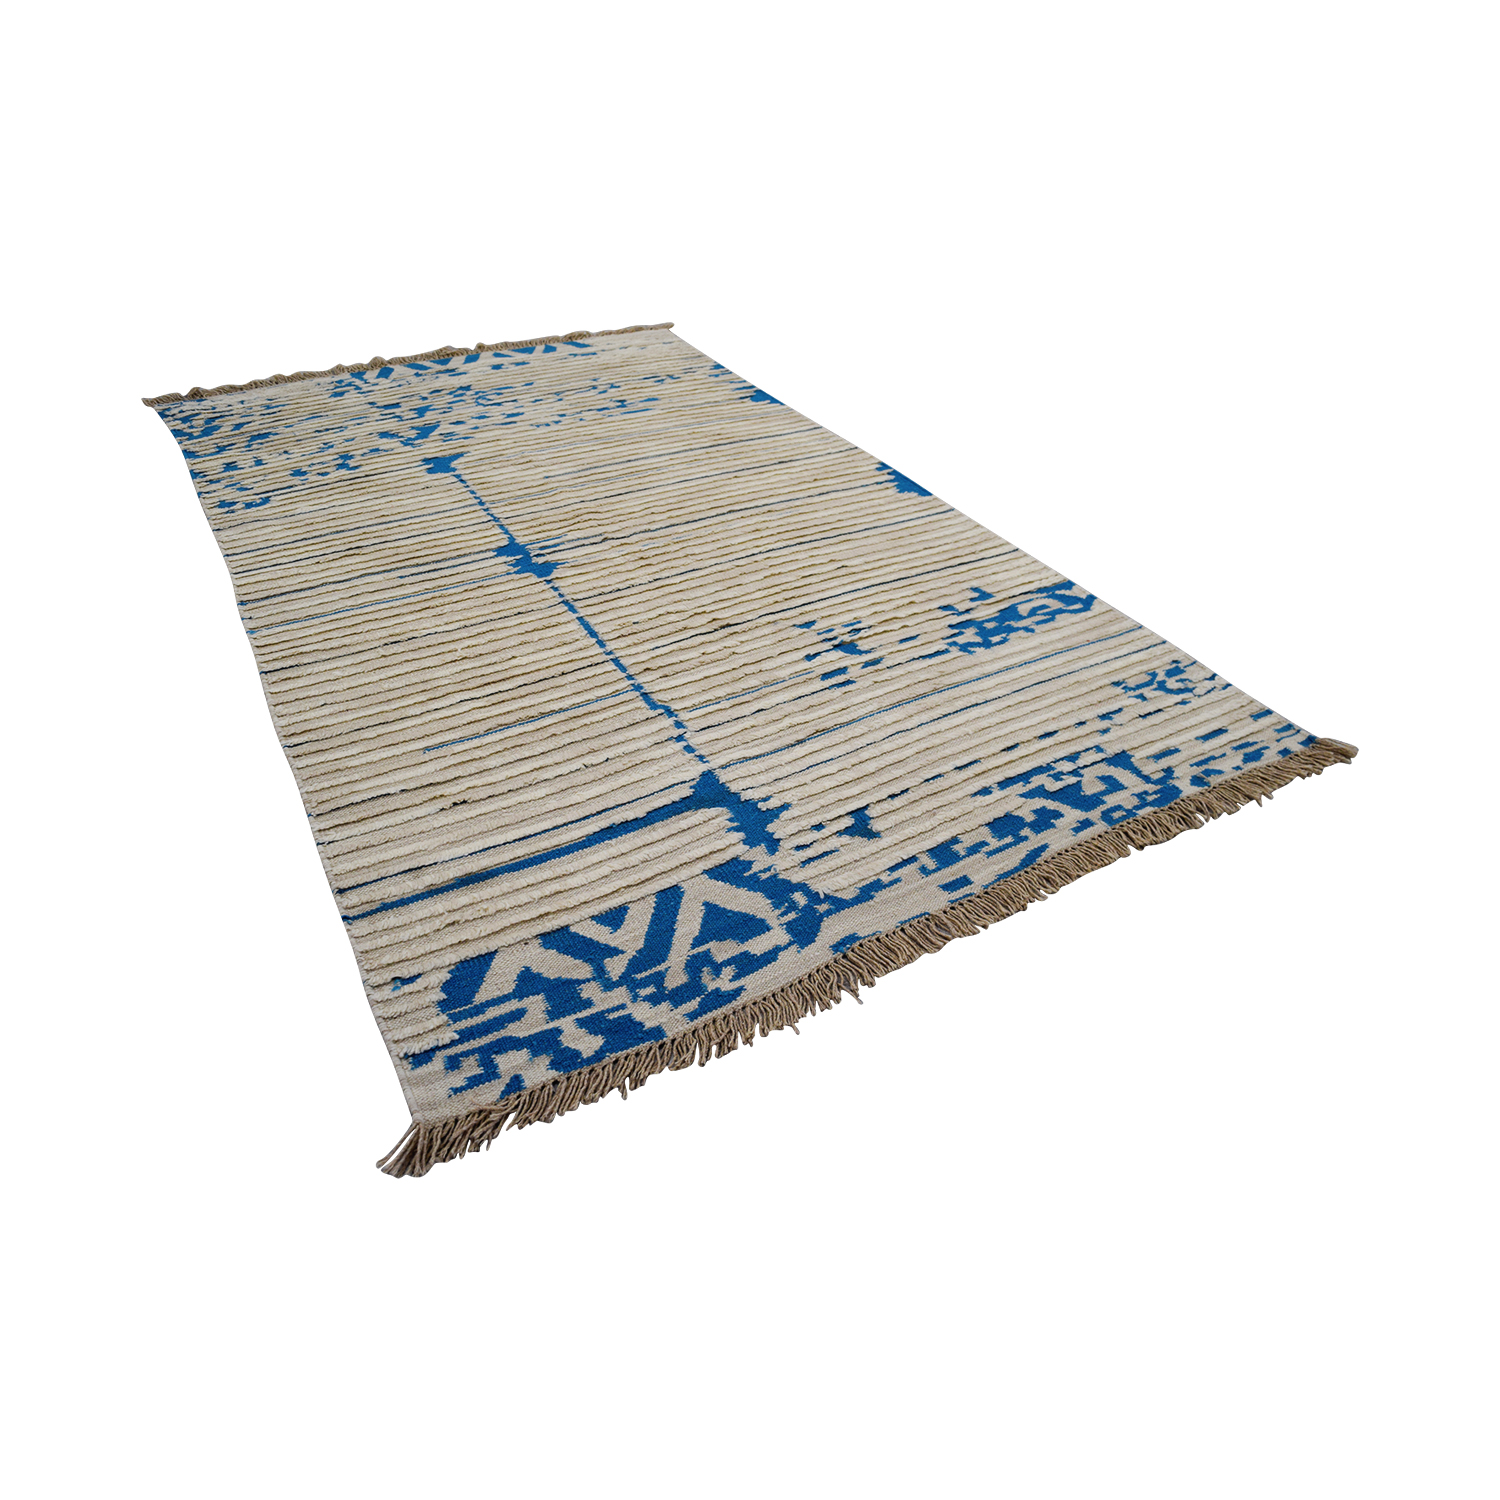 Obeetee Obeetee Blue and White Flat Weave Rugs